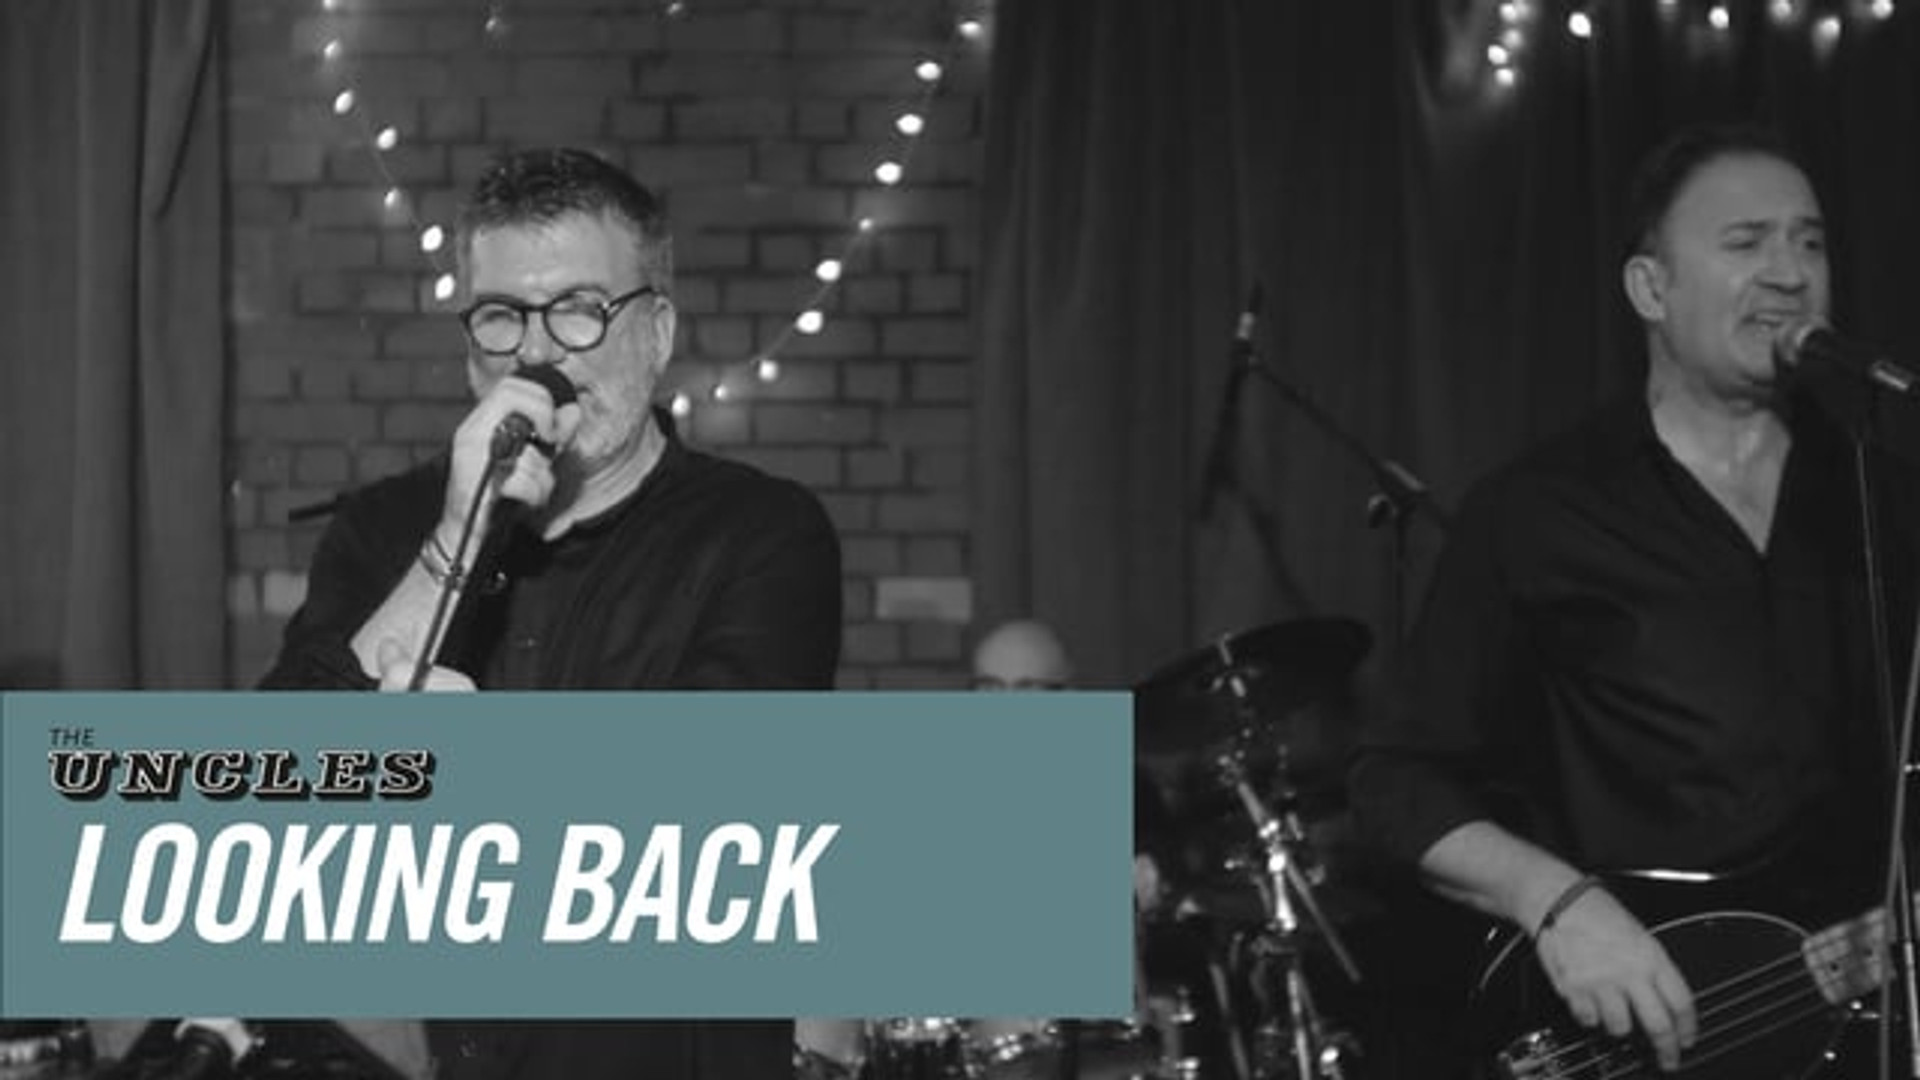 Looking Back - The Uncles, live at the Green Bank